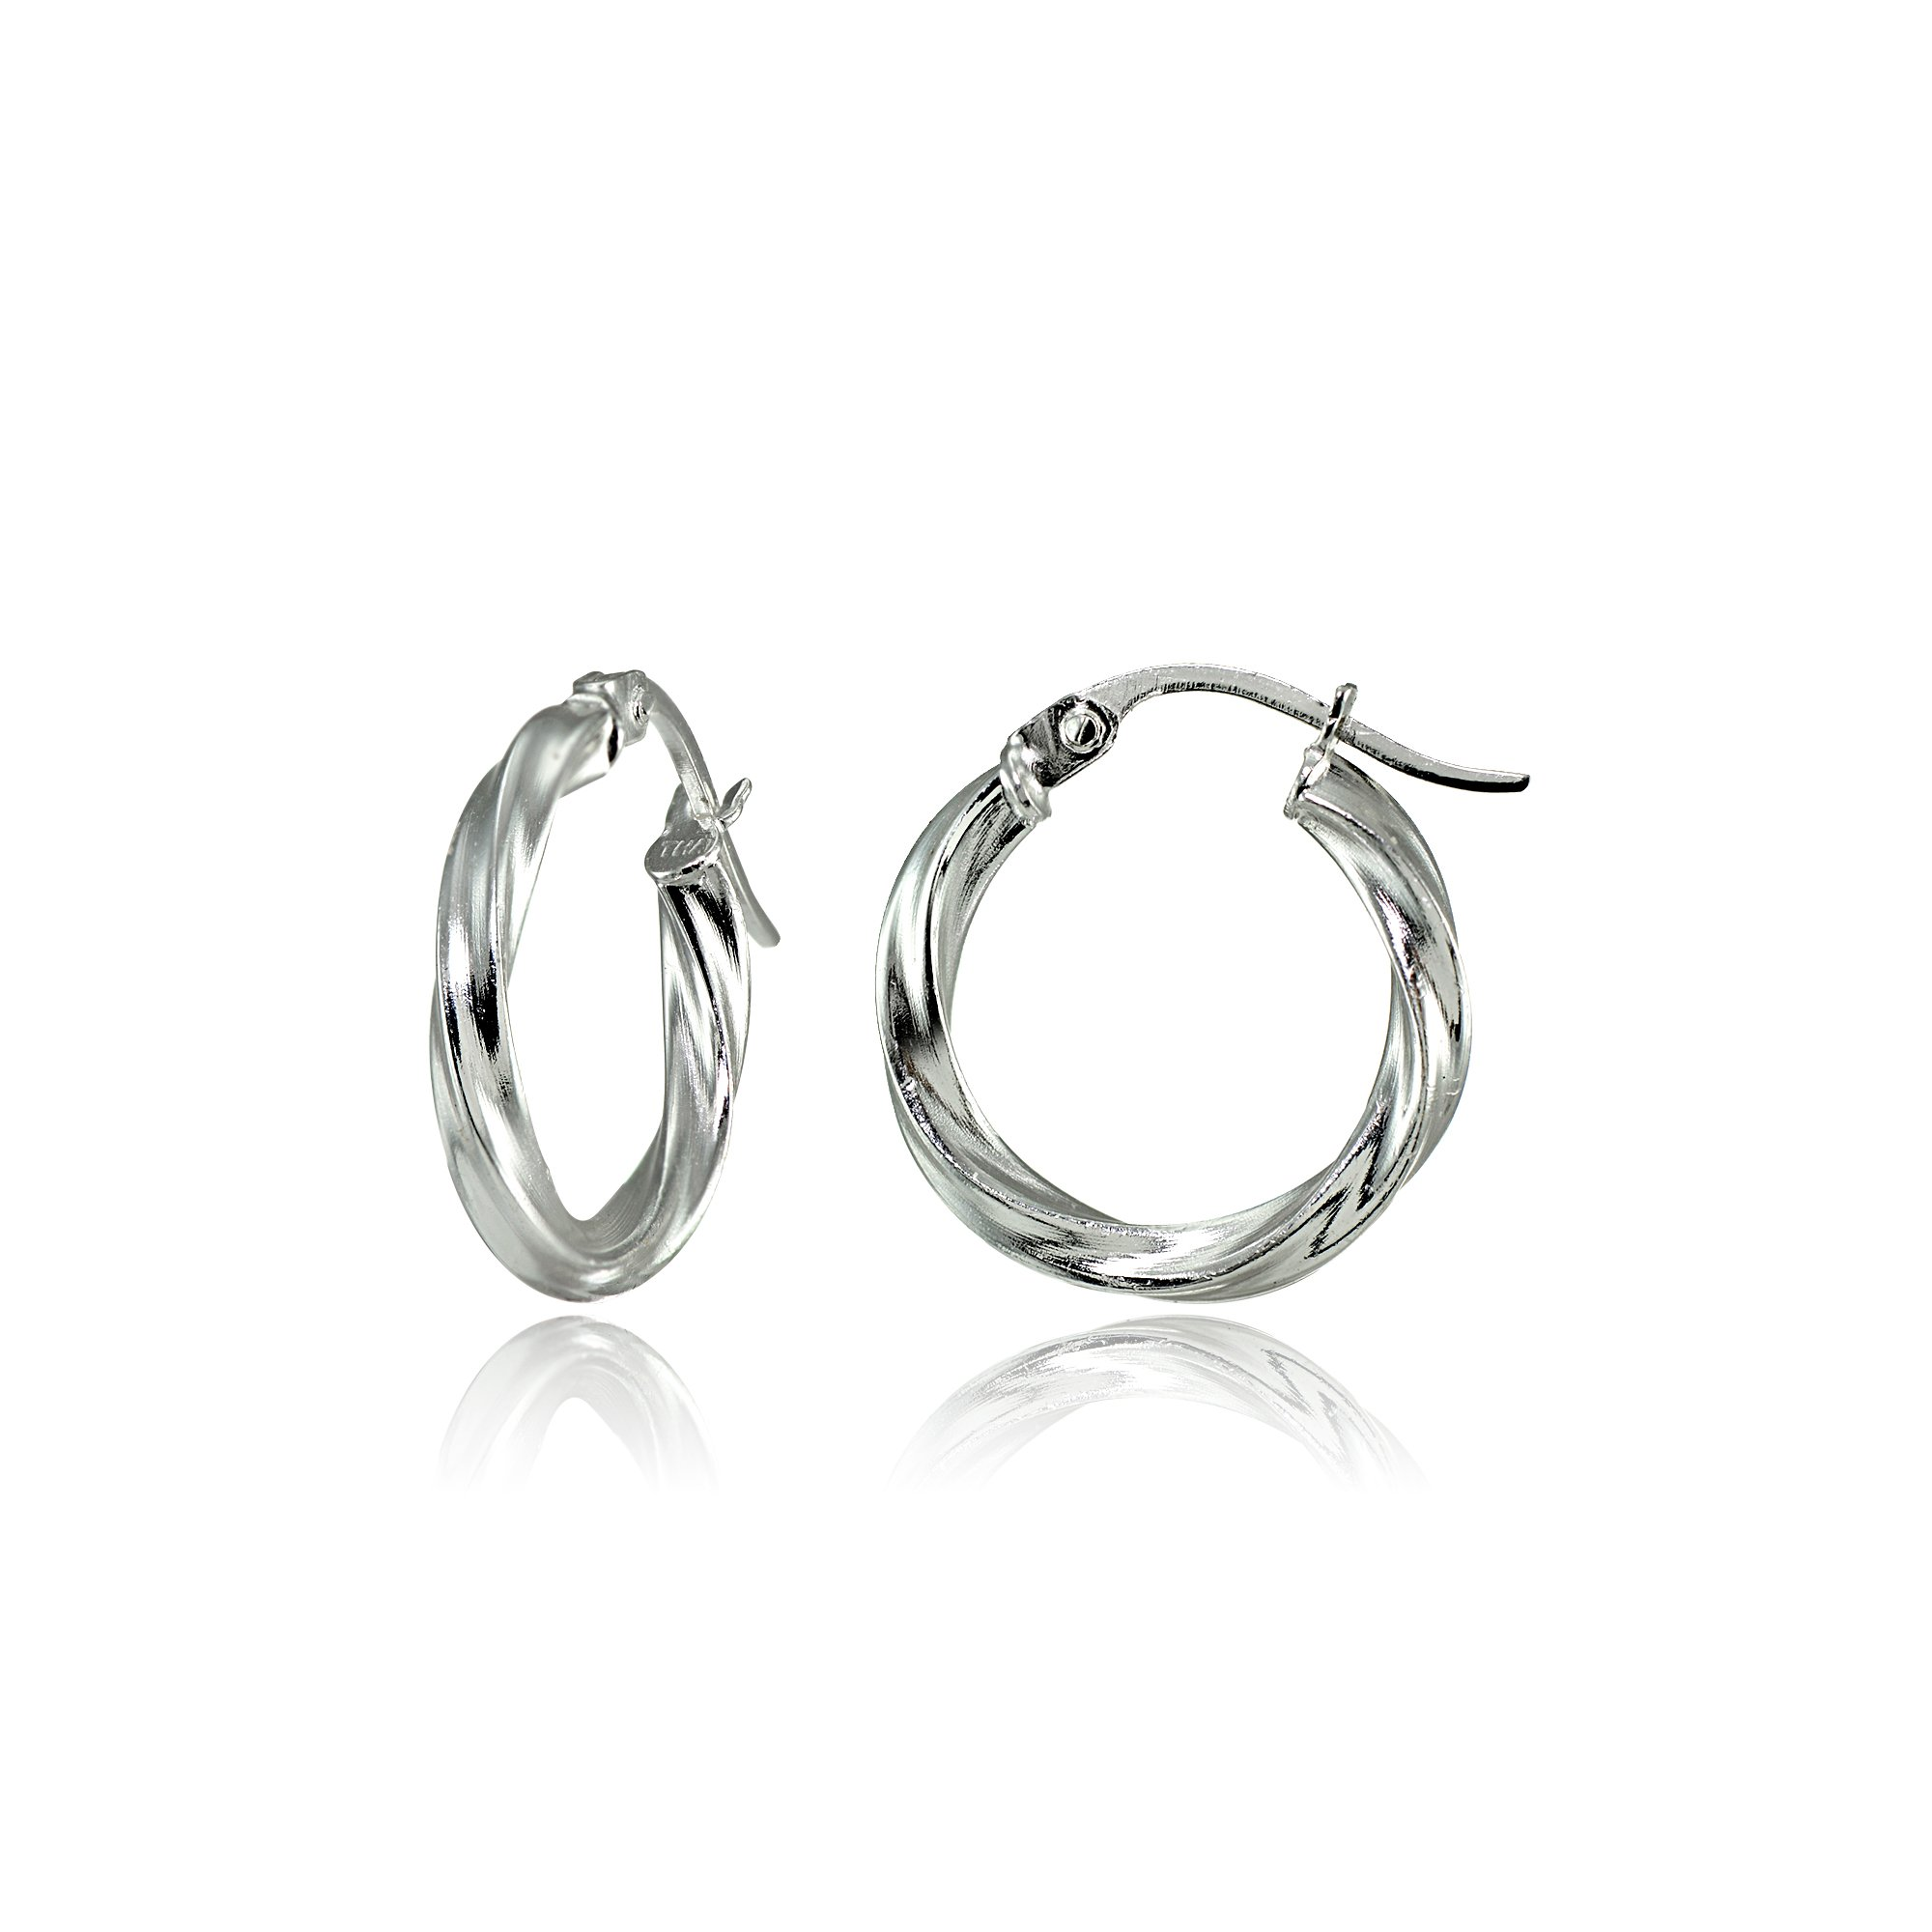 Hoops & Loops Sterling Silver 2mm Twist Round Hoop Earrings, 15mm